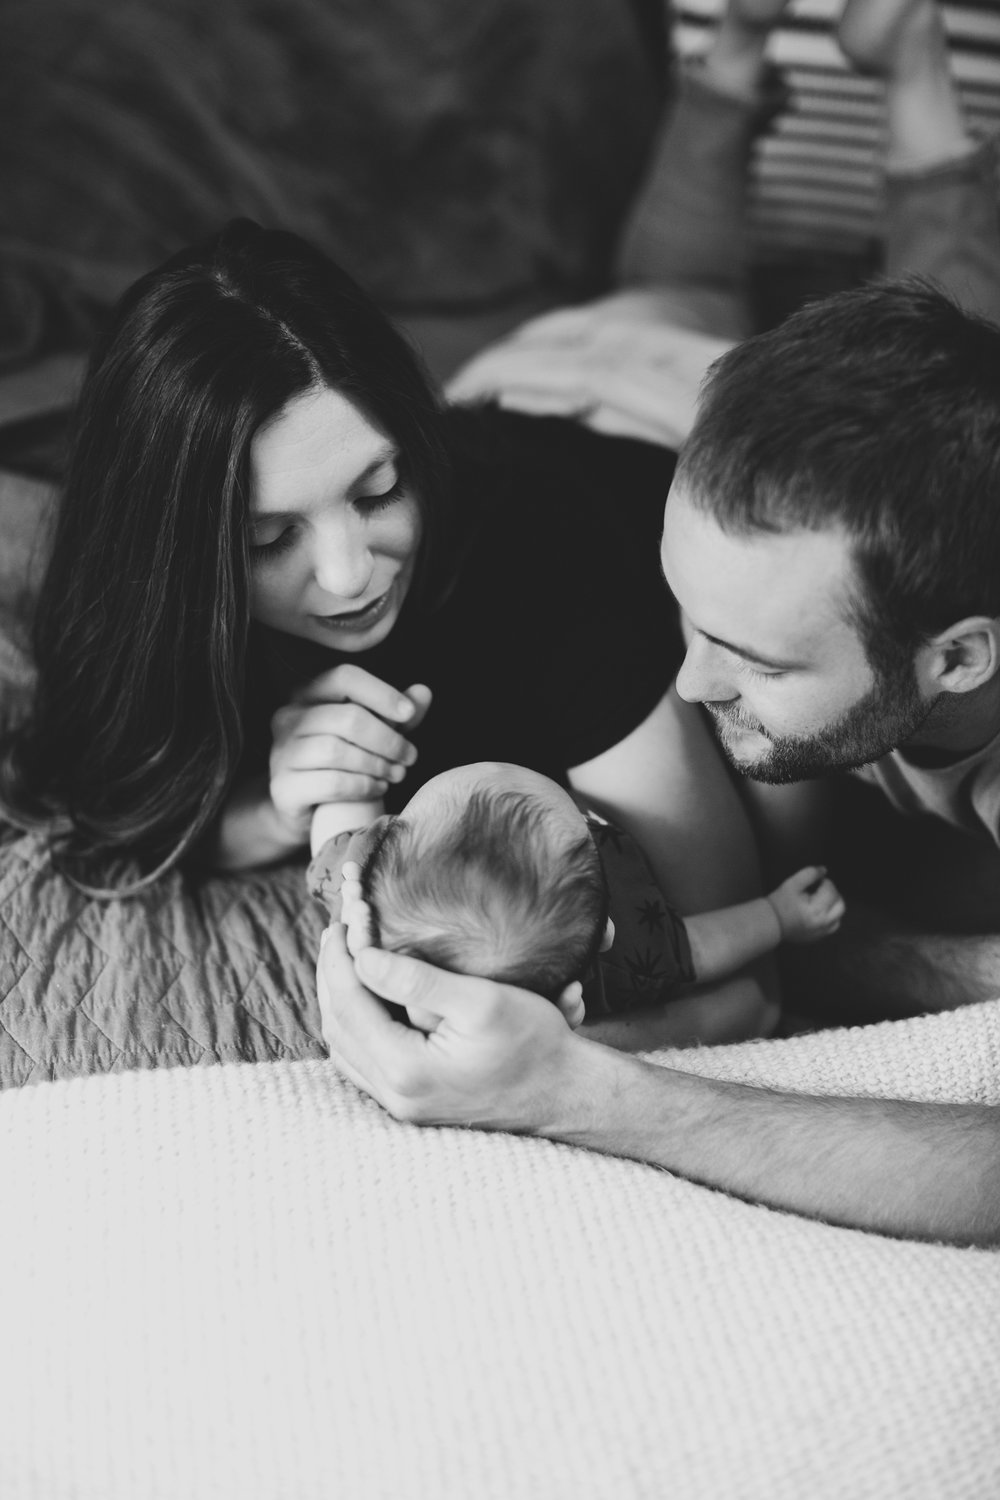 Jordan Edens Photography_tri cities photographer_kennewick photographer_richland photographer_tri cities family photographer_tri cities lifestyle photographer_family photos_baby photos_memories and milestones_lifestyle newborn session_tri cities in home photo session_29